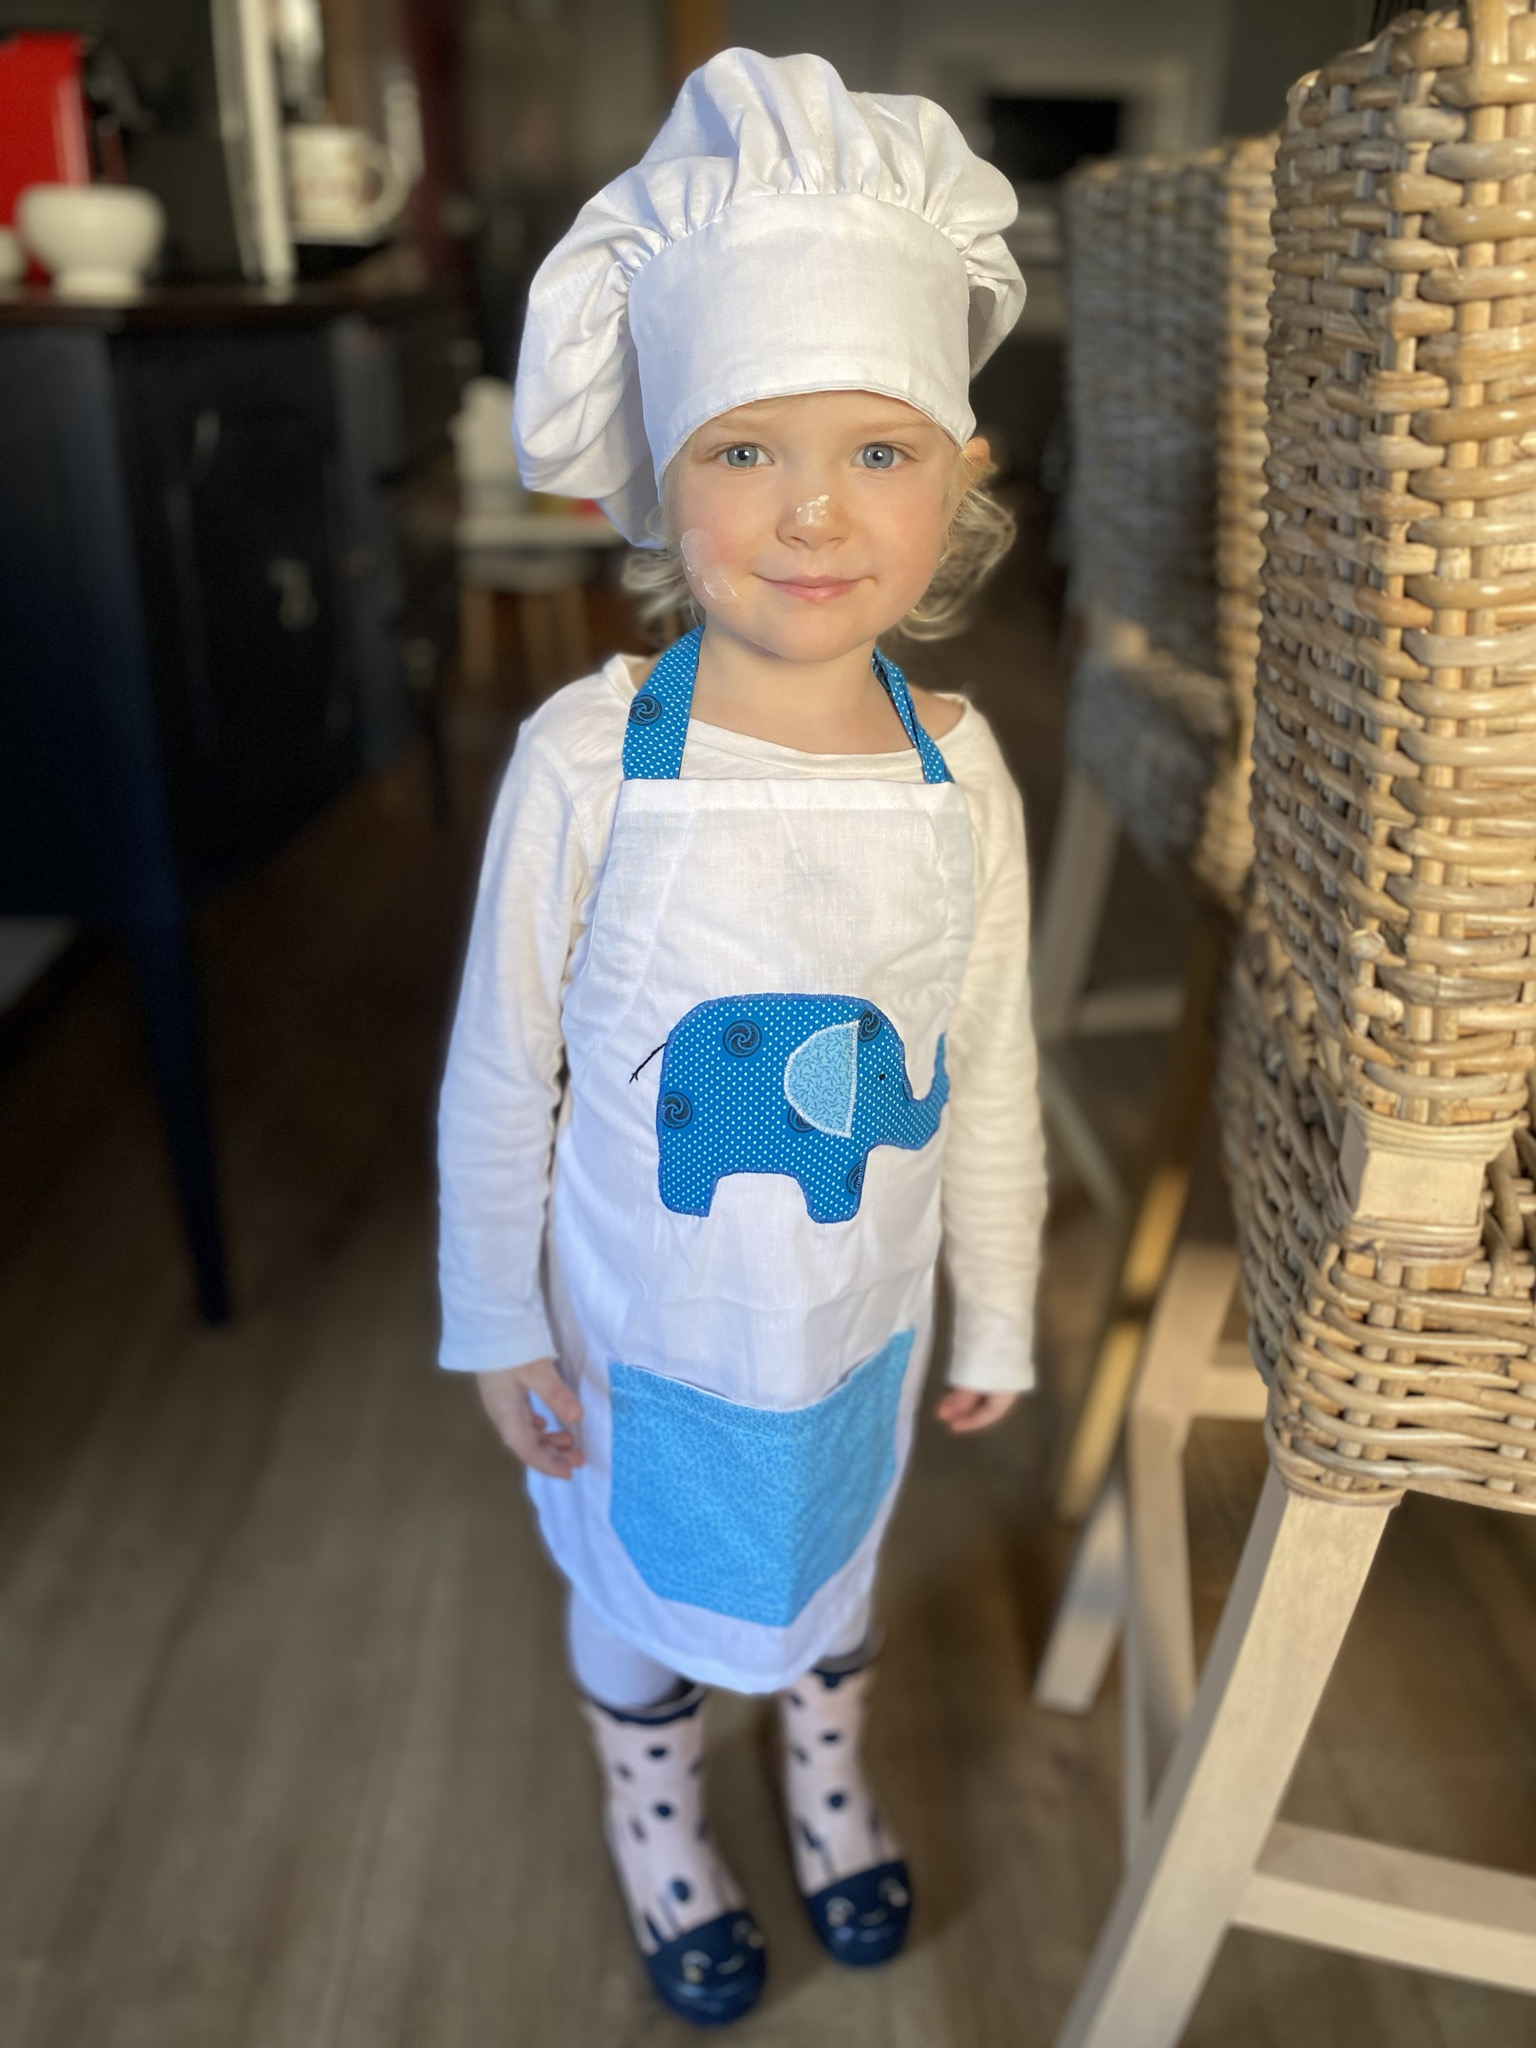 Kiddies apron and chef's hat